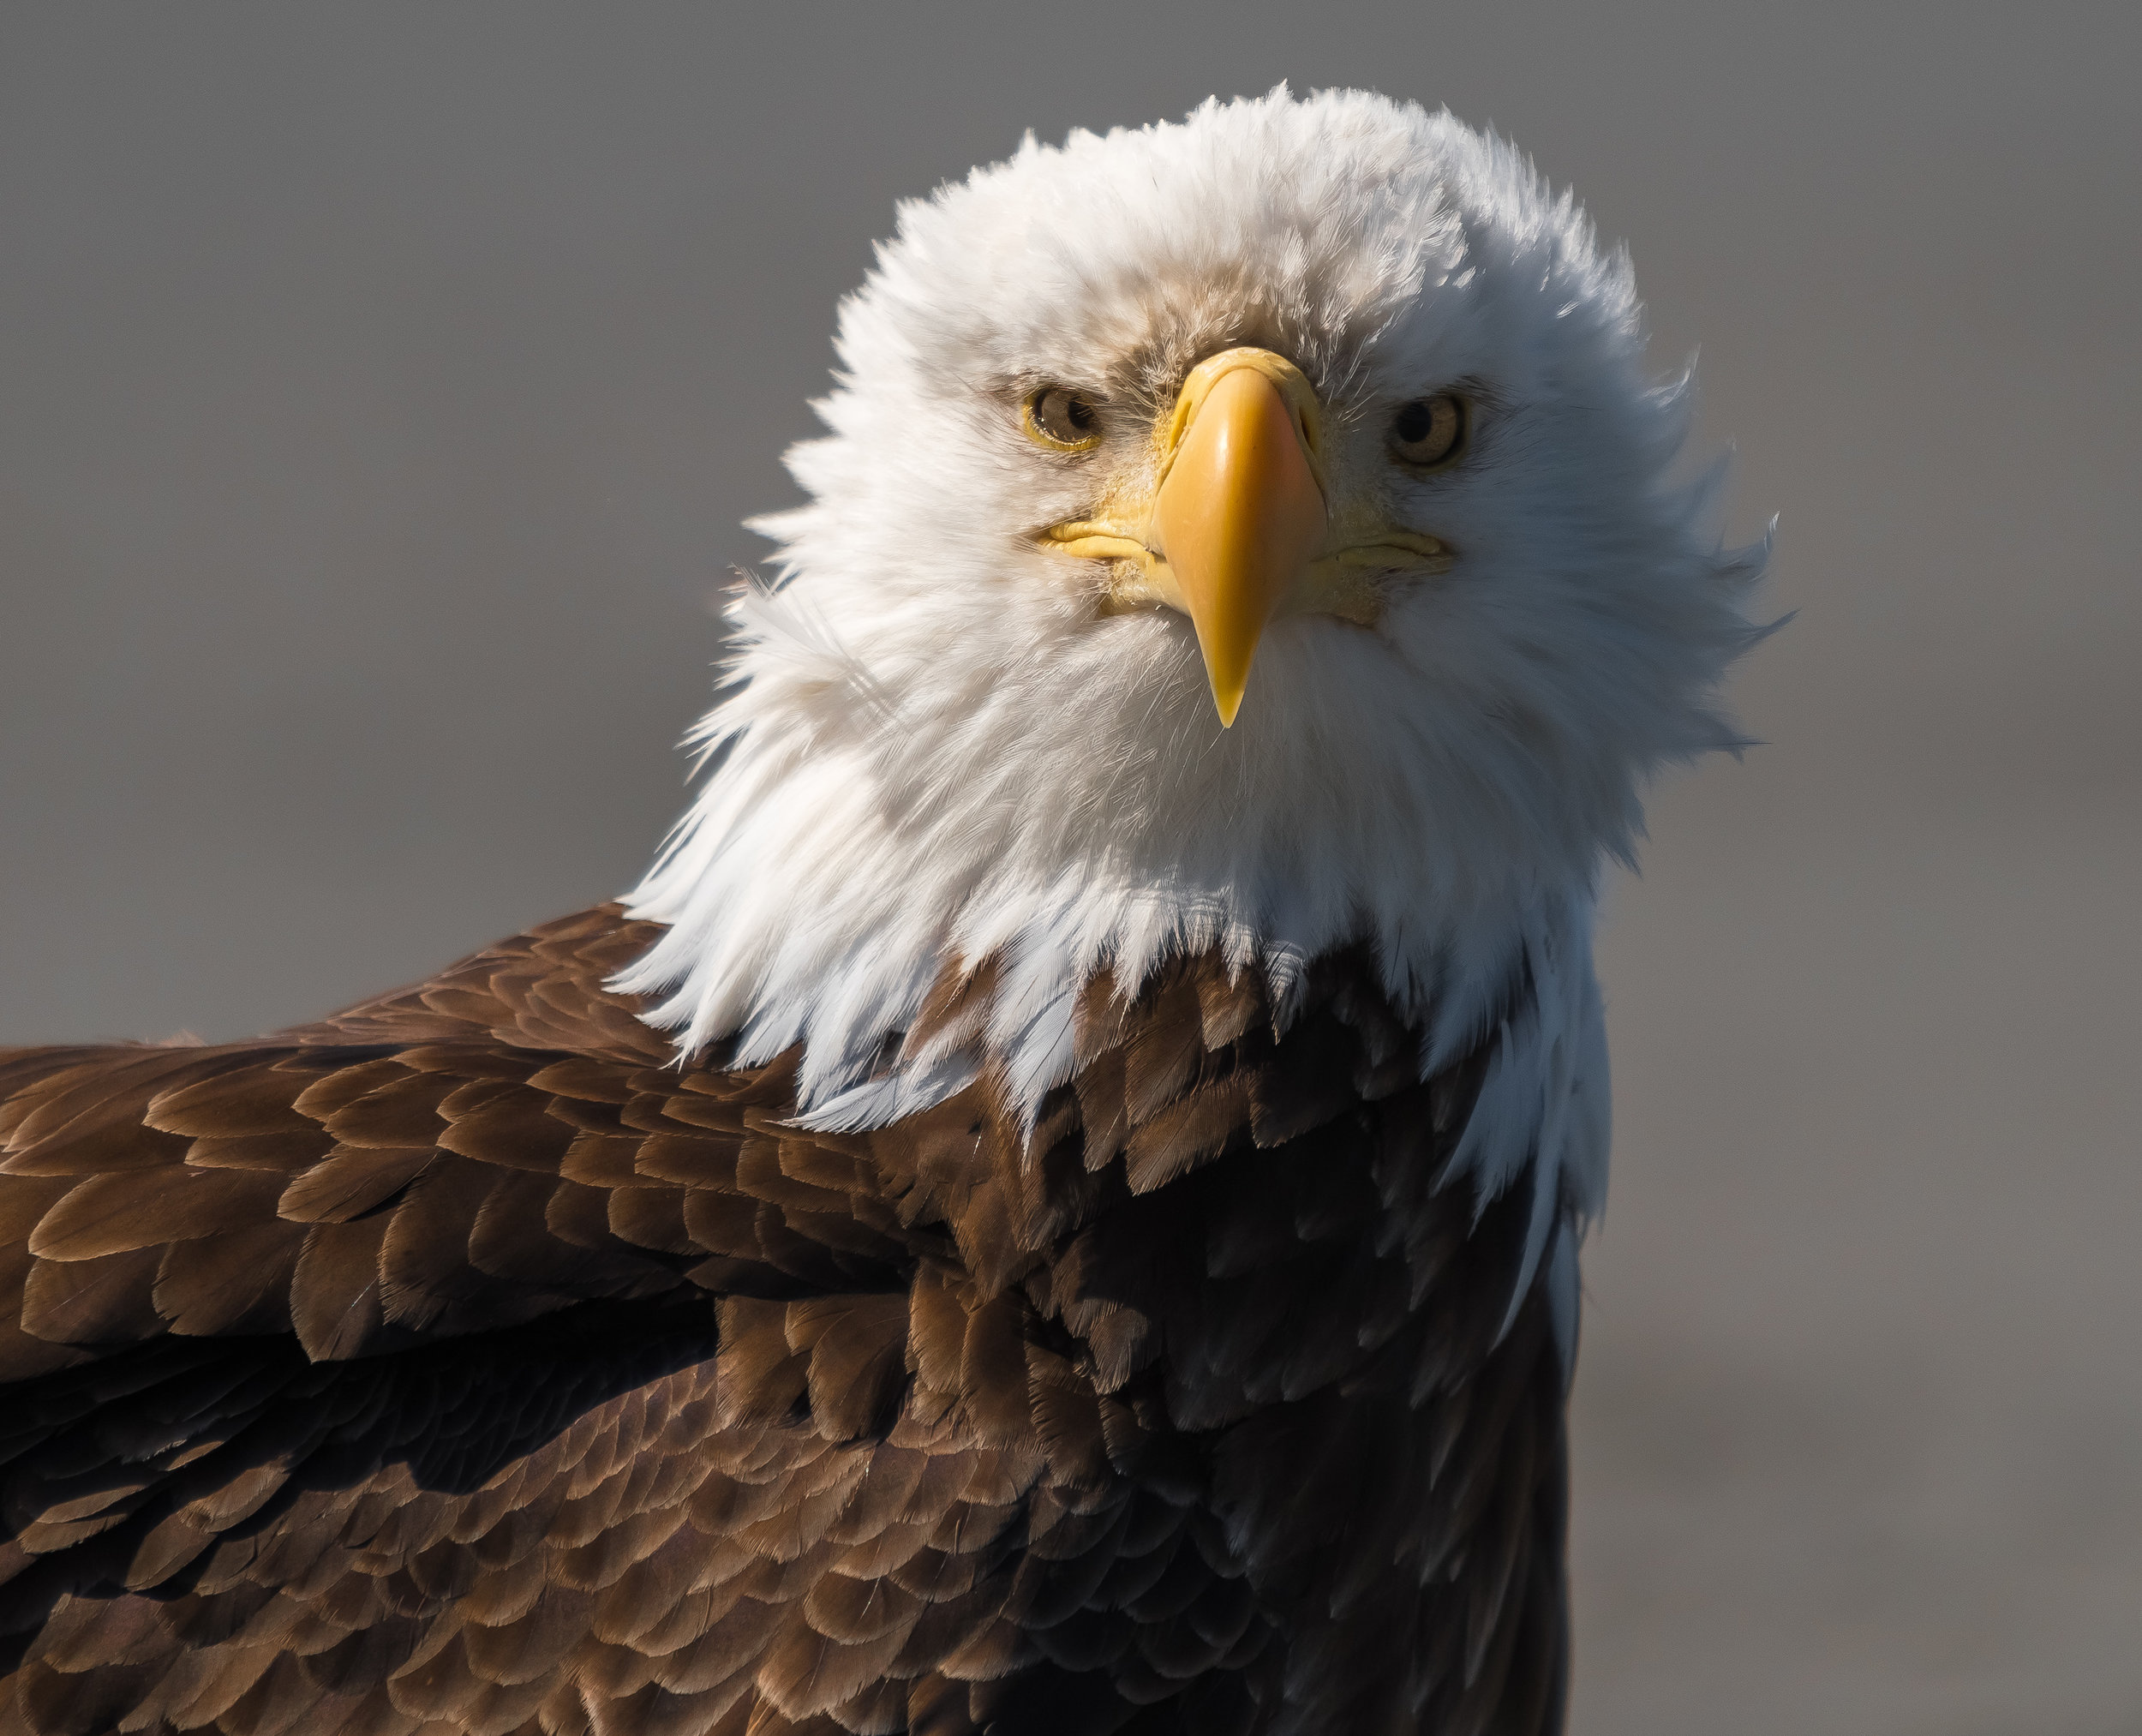 When you come to Homer, before you do your bear view or flightsee tour, you will see lots of these mighty eagles. The Bald Eagle, one of the symbols of the United States and we are proud to have so many here.